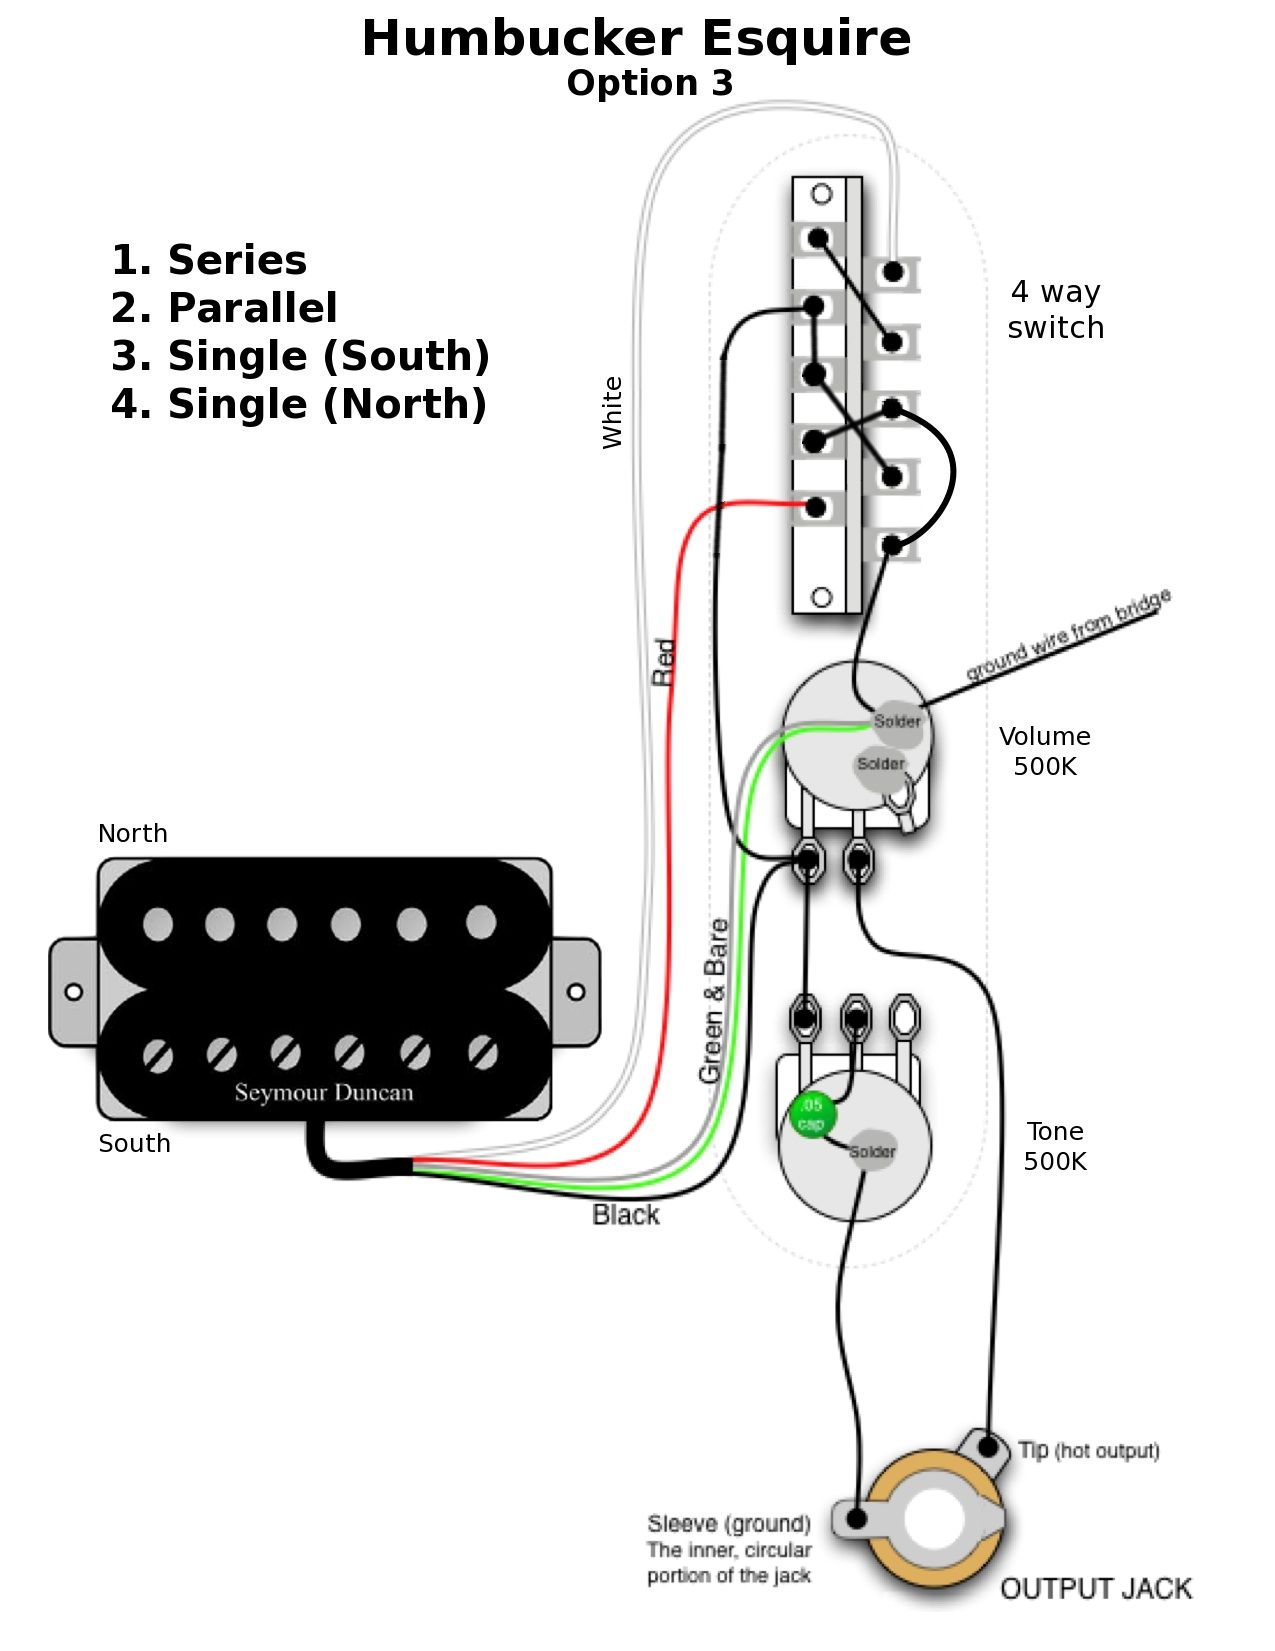 archtop wiring diagram with Esquire Wiring Diagram Humbucker on Telechargements in addition Epiphone Wiring Harness in addition Esquire Wiring Diagram Humbucker additionally Gibson Burstbucker Wiring Diagram also Wiring Diagram Electric Golf Cart.